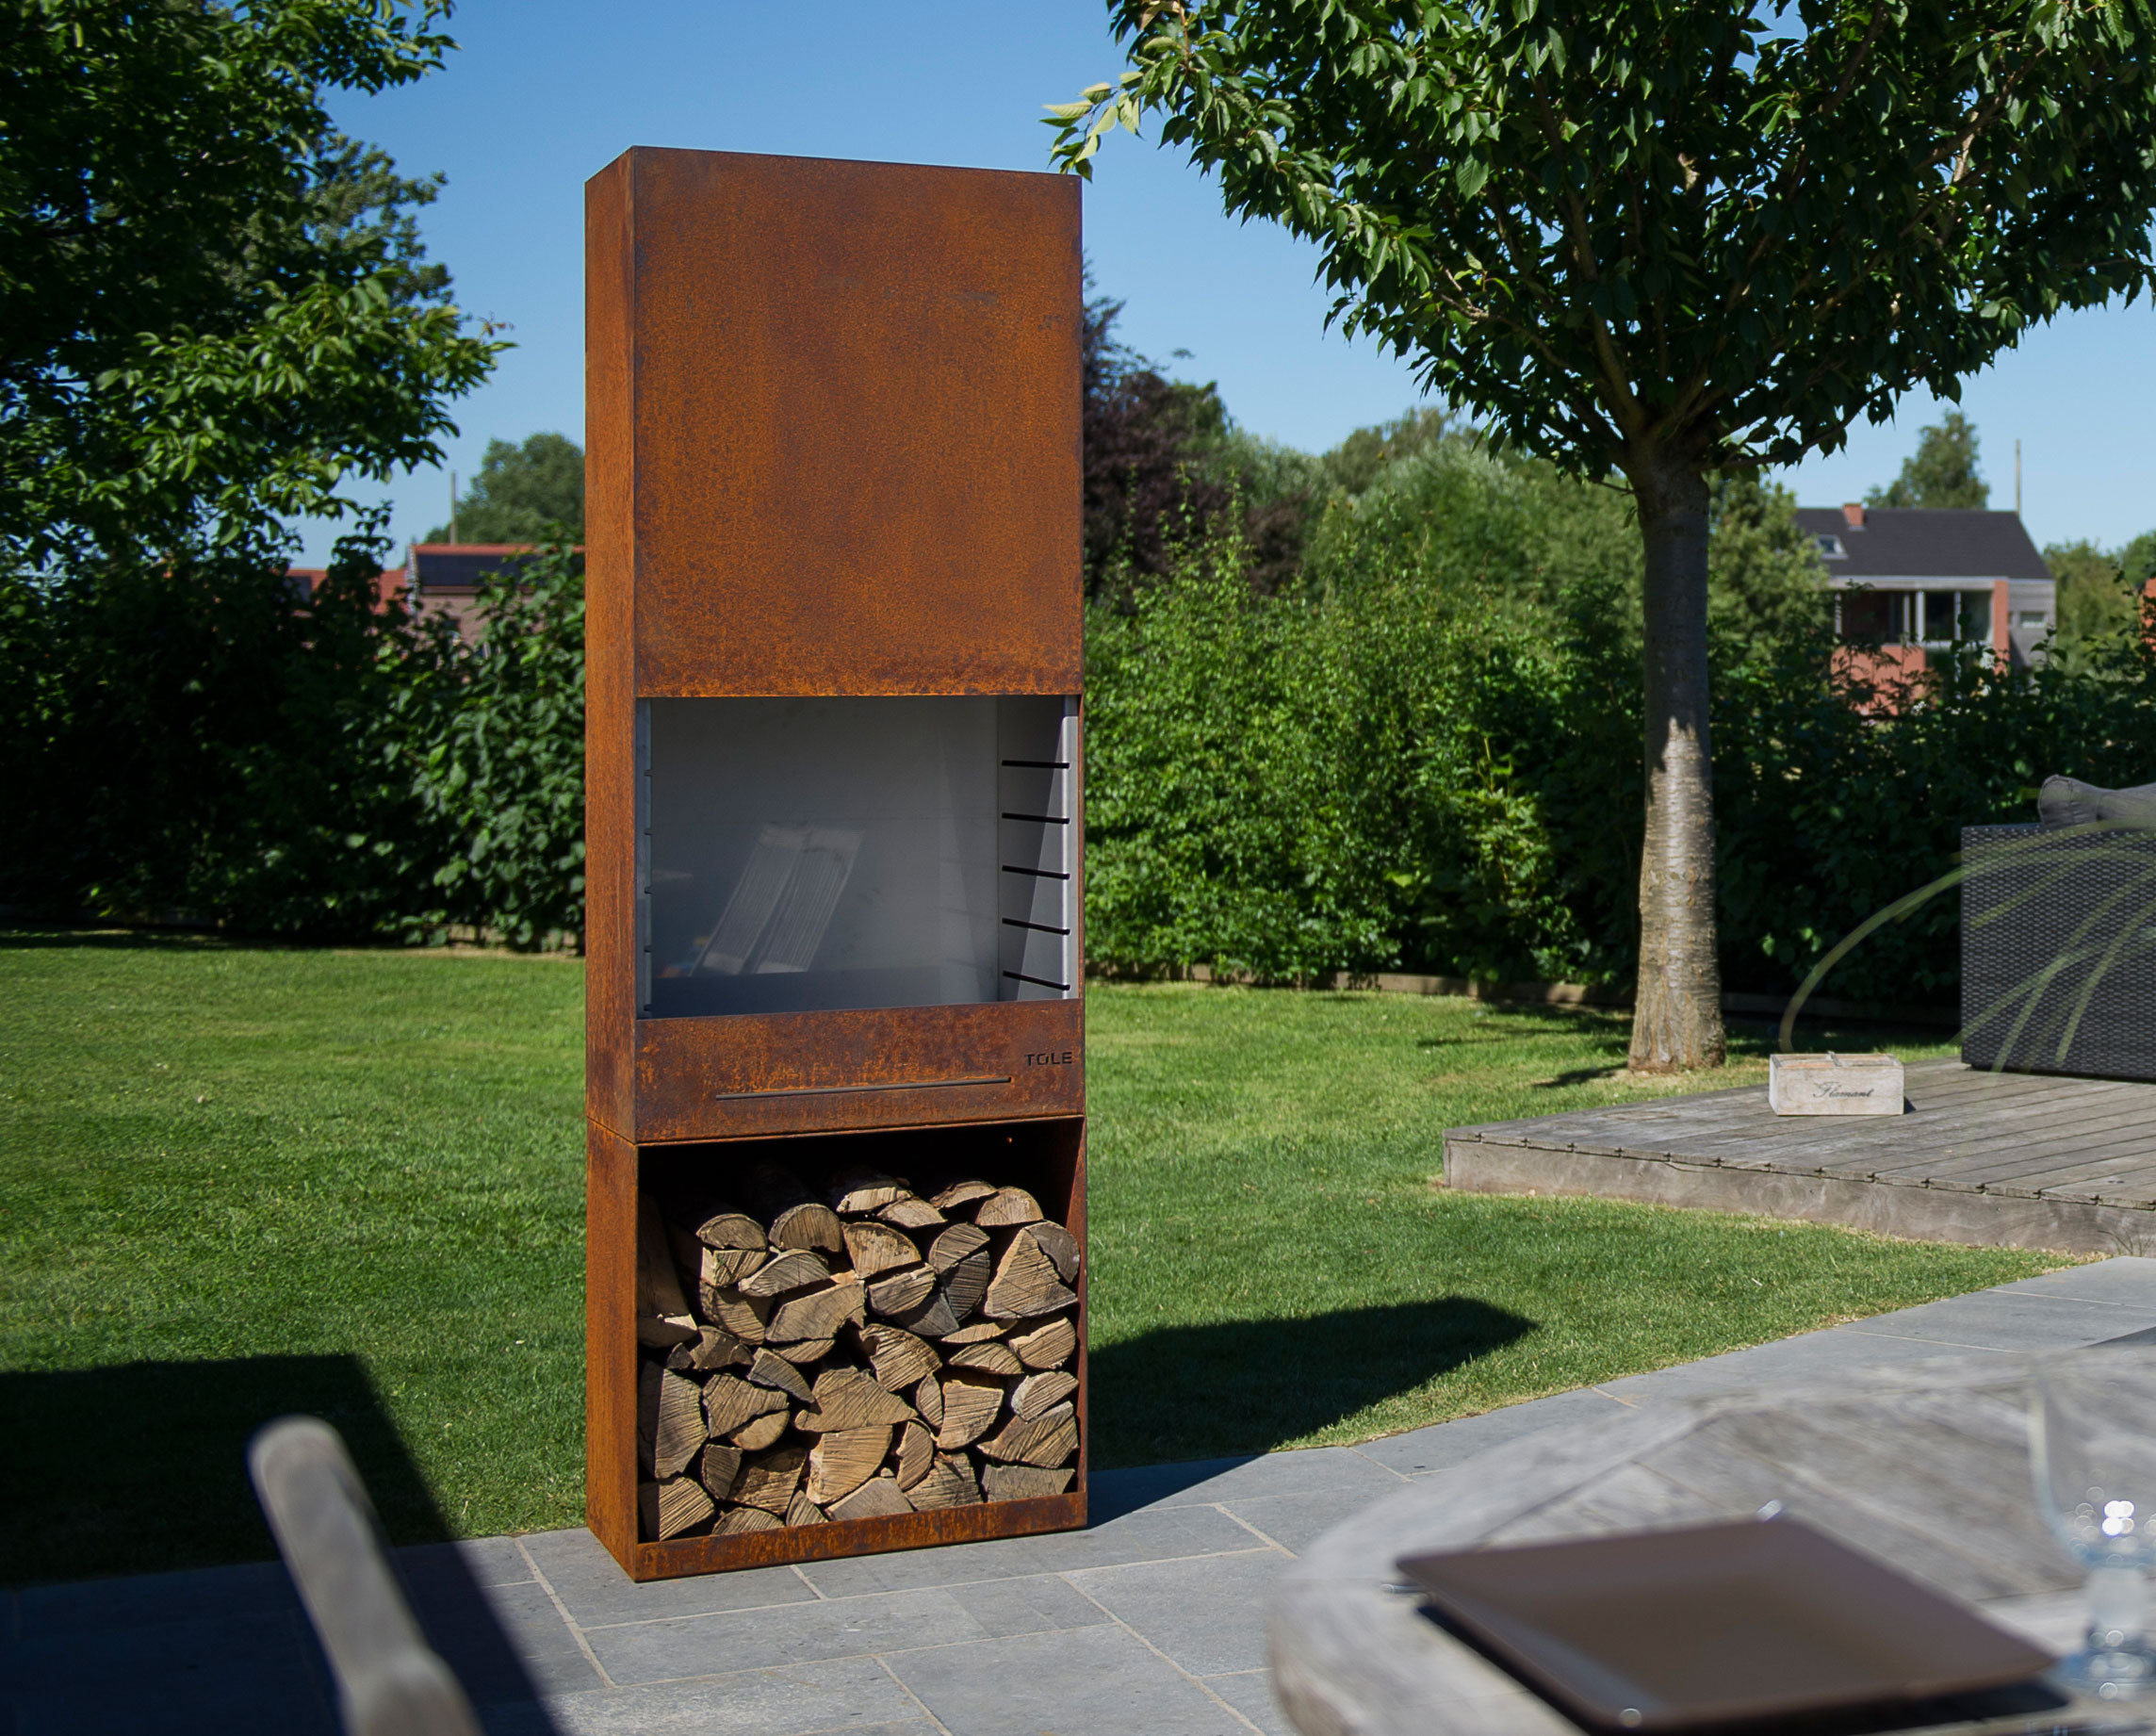 der tole gartenfeuer grill kamin k60 ingarden garten. Black Bedroom Furniture Sets. Home Design Ideas